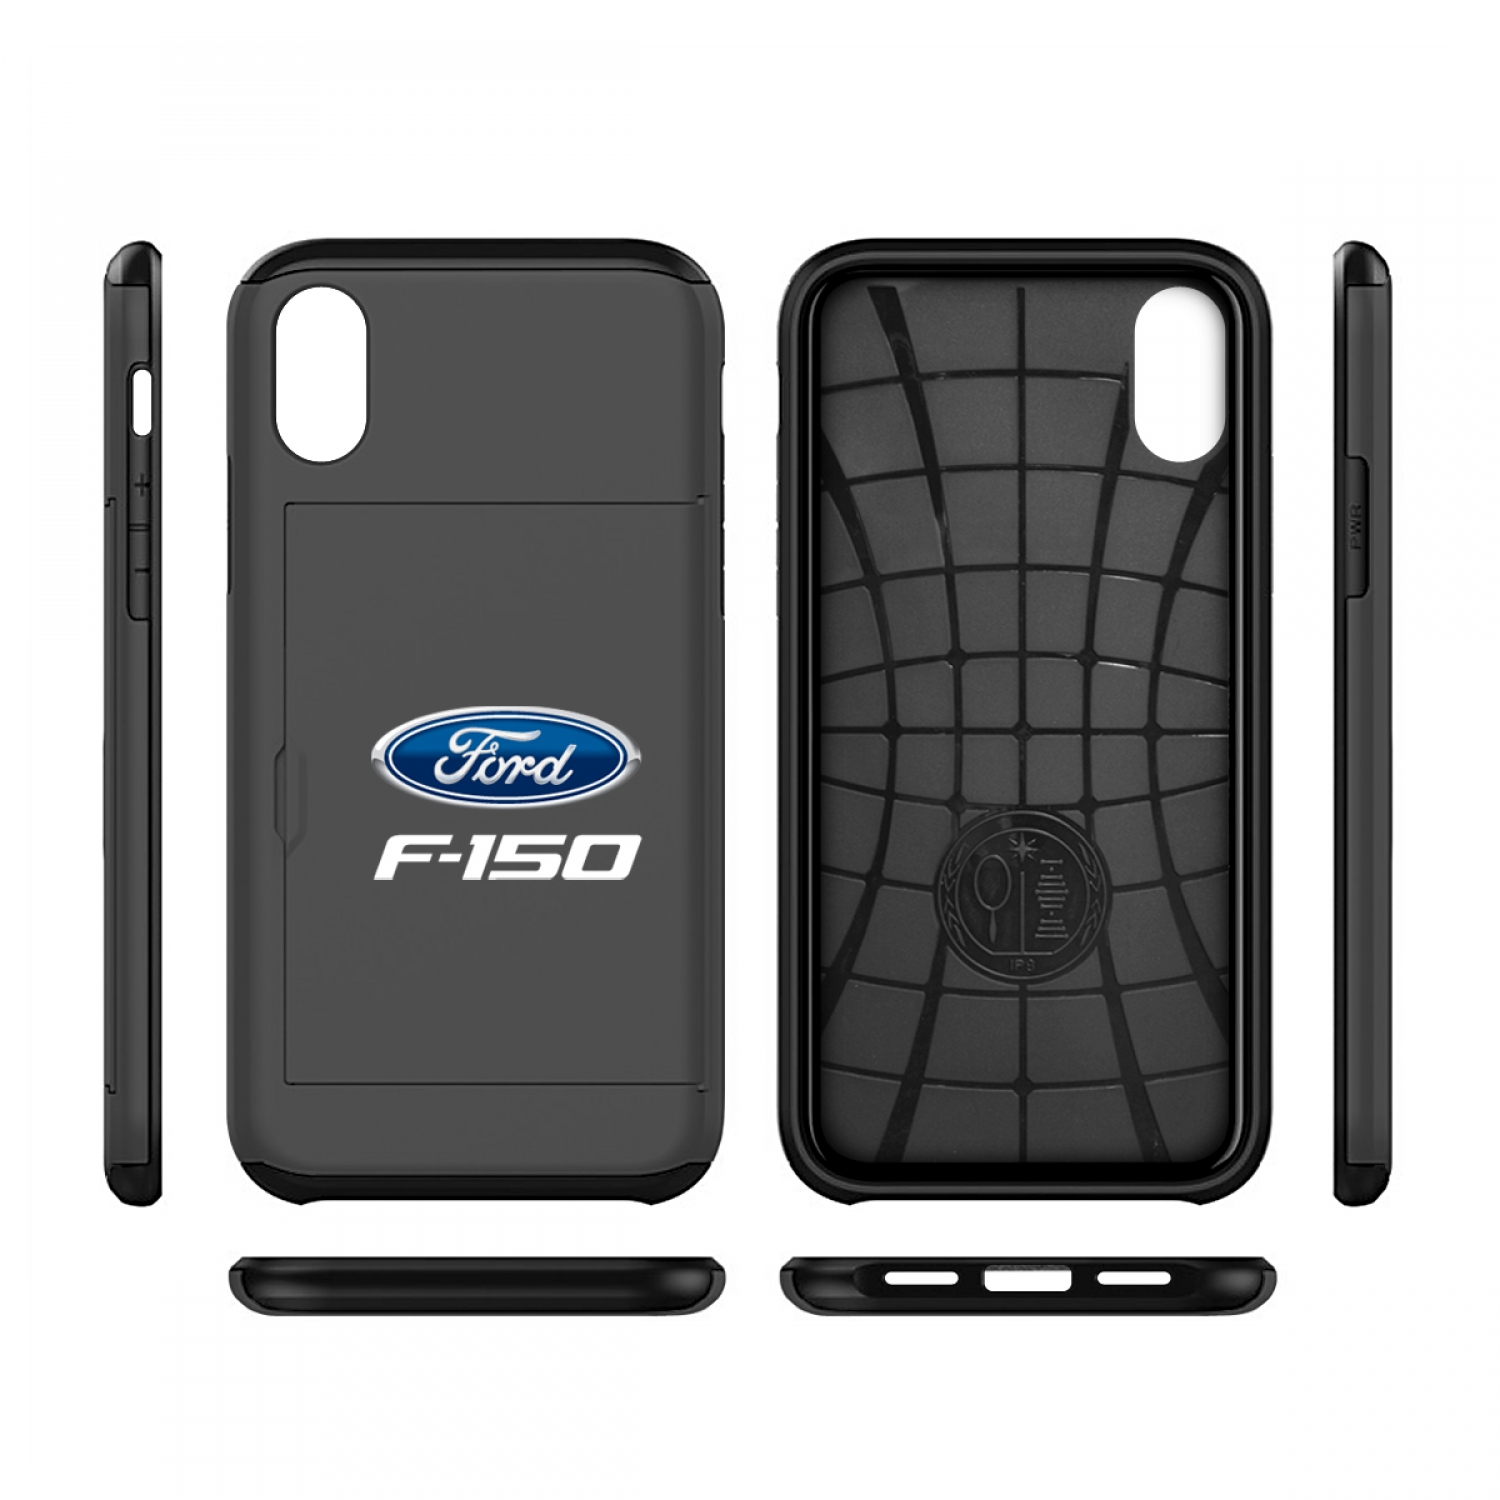 Ford F-150 iPhone X Black Shockproof with Card Holder Cell Phone Case